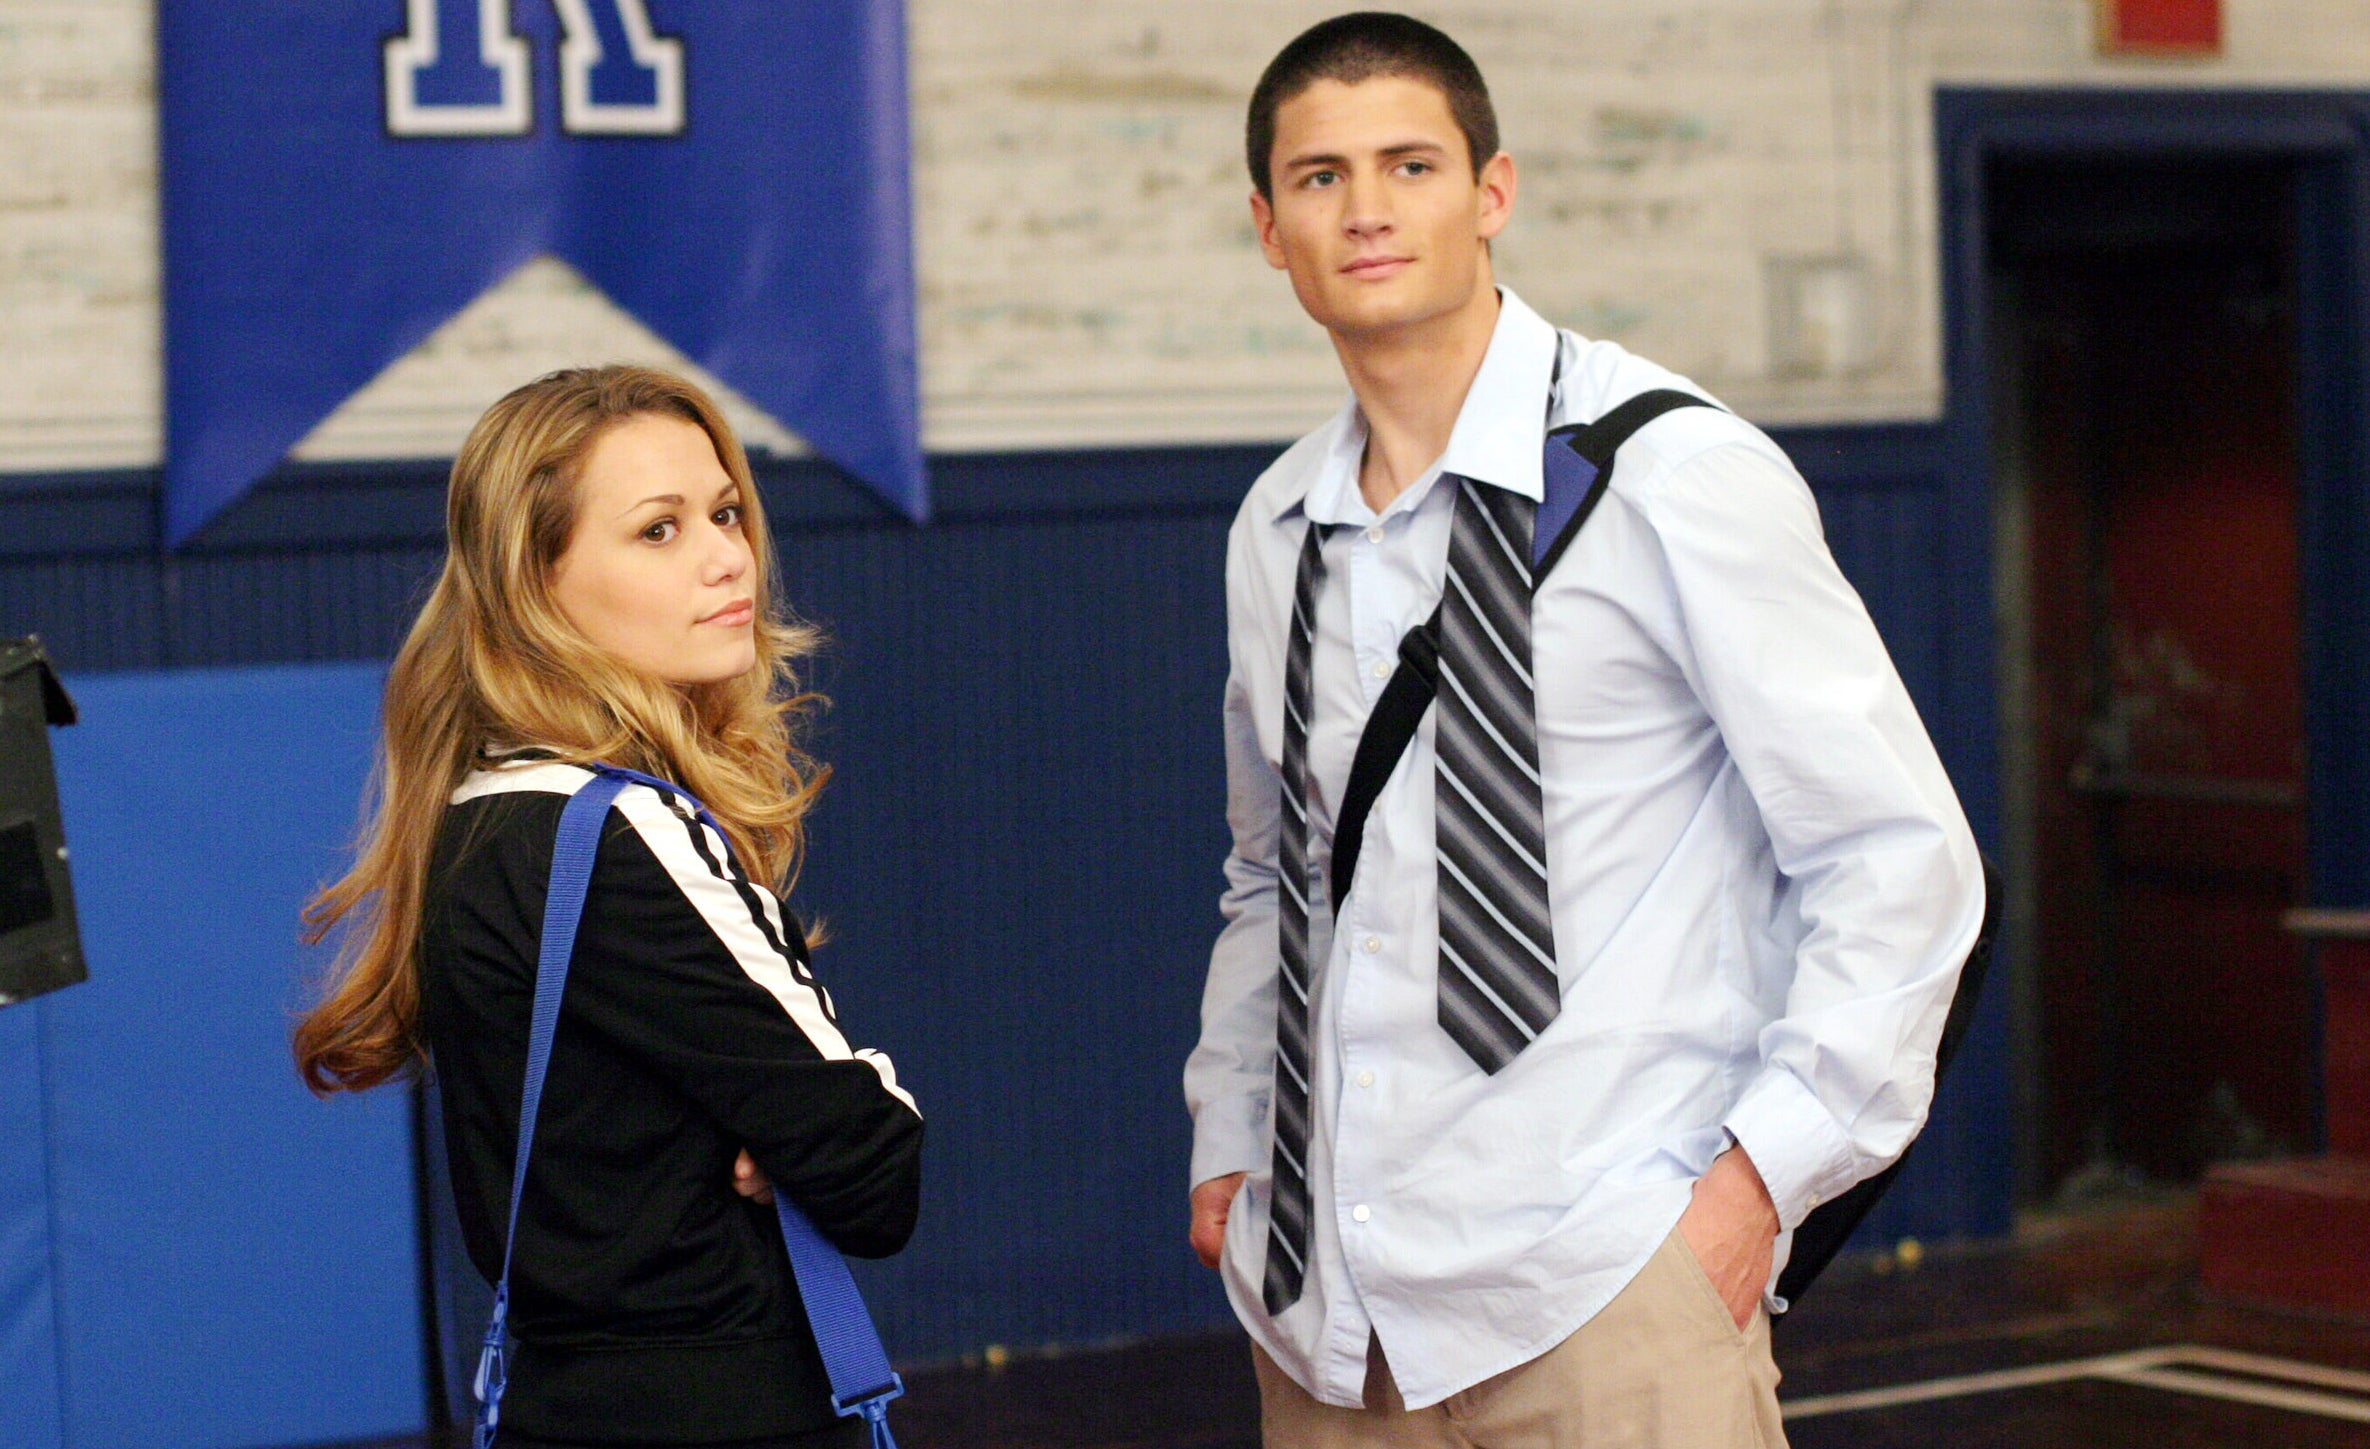 Haley and Nathan standing together but not looking at each other